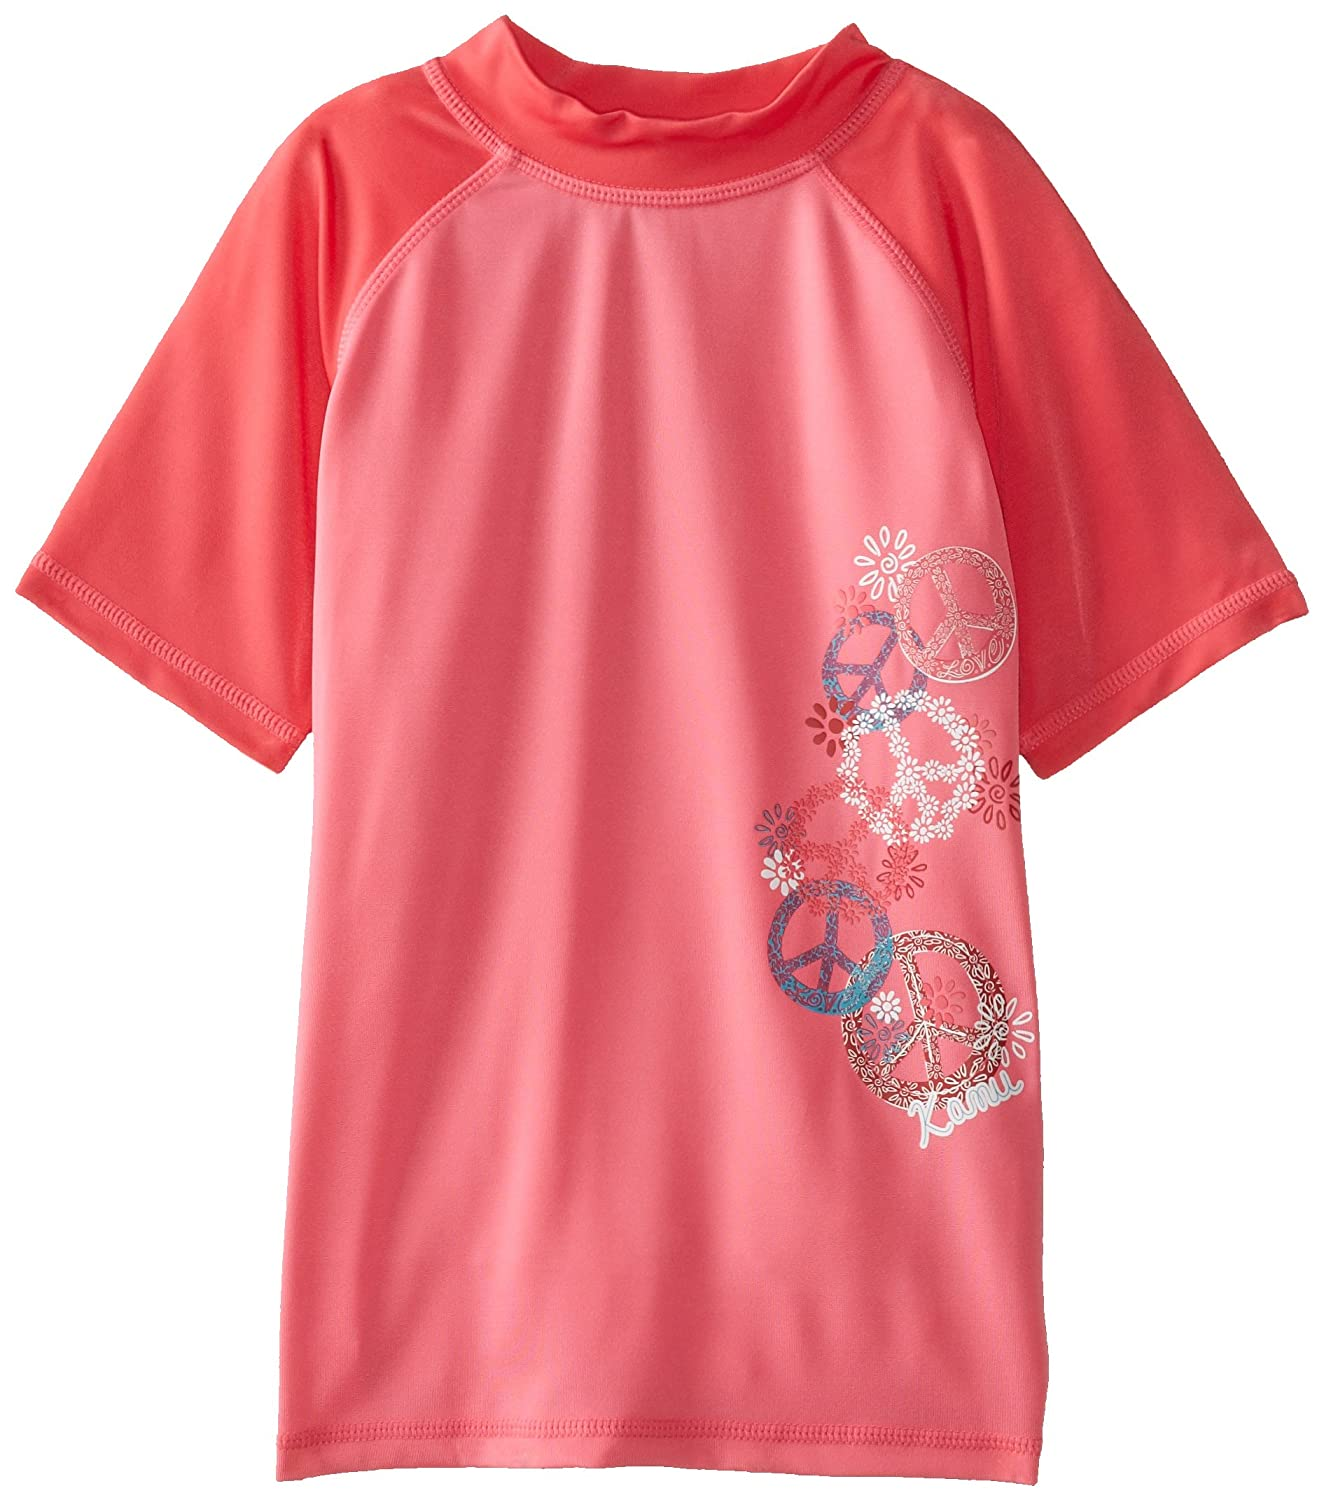 Kanu Surf Big Girls' Peace and Love Rashguards Pink 12/Large Kanu Surf Girls 7-16